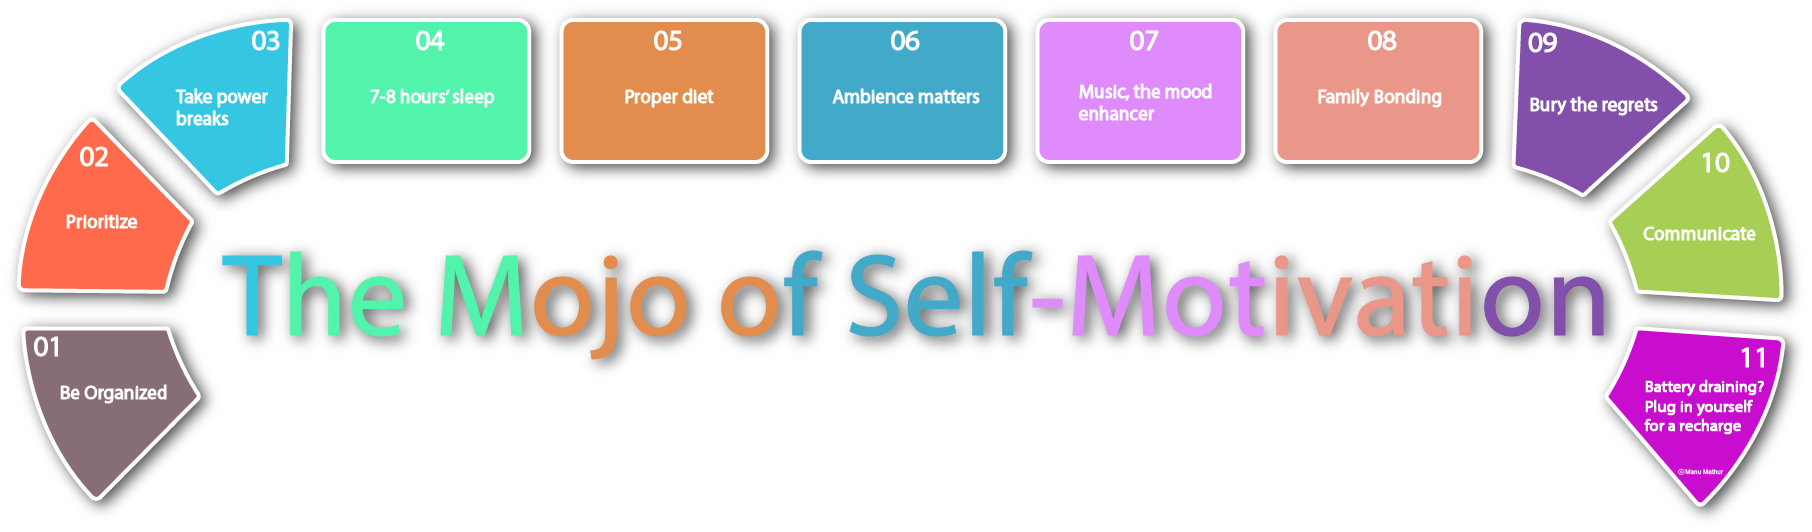 self-motivation-infographic